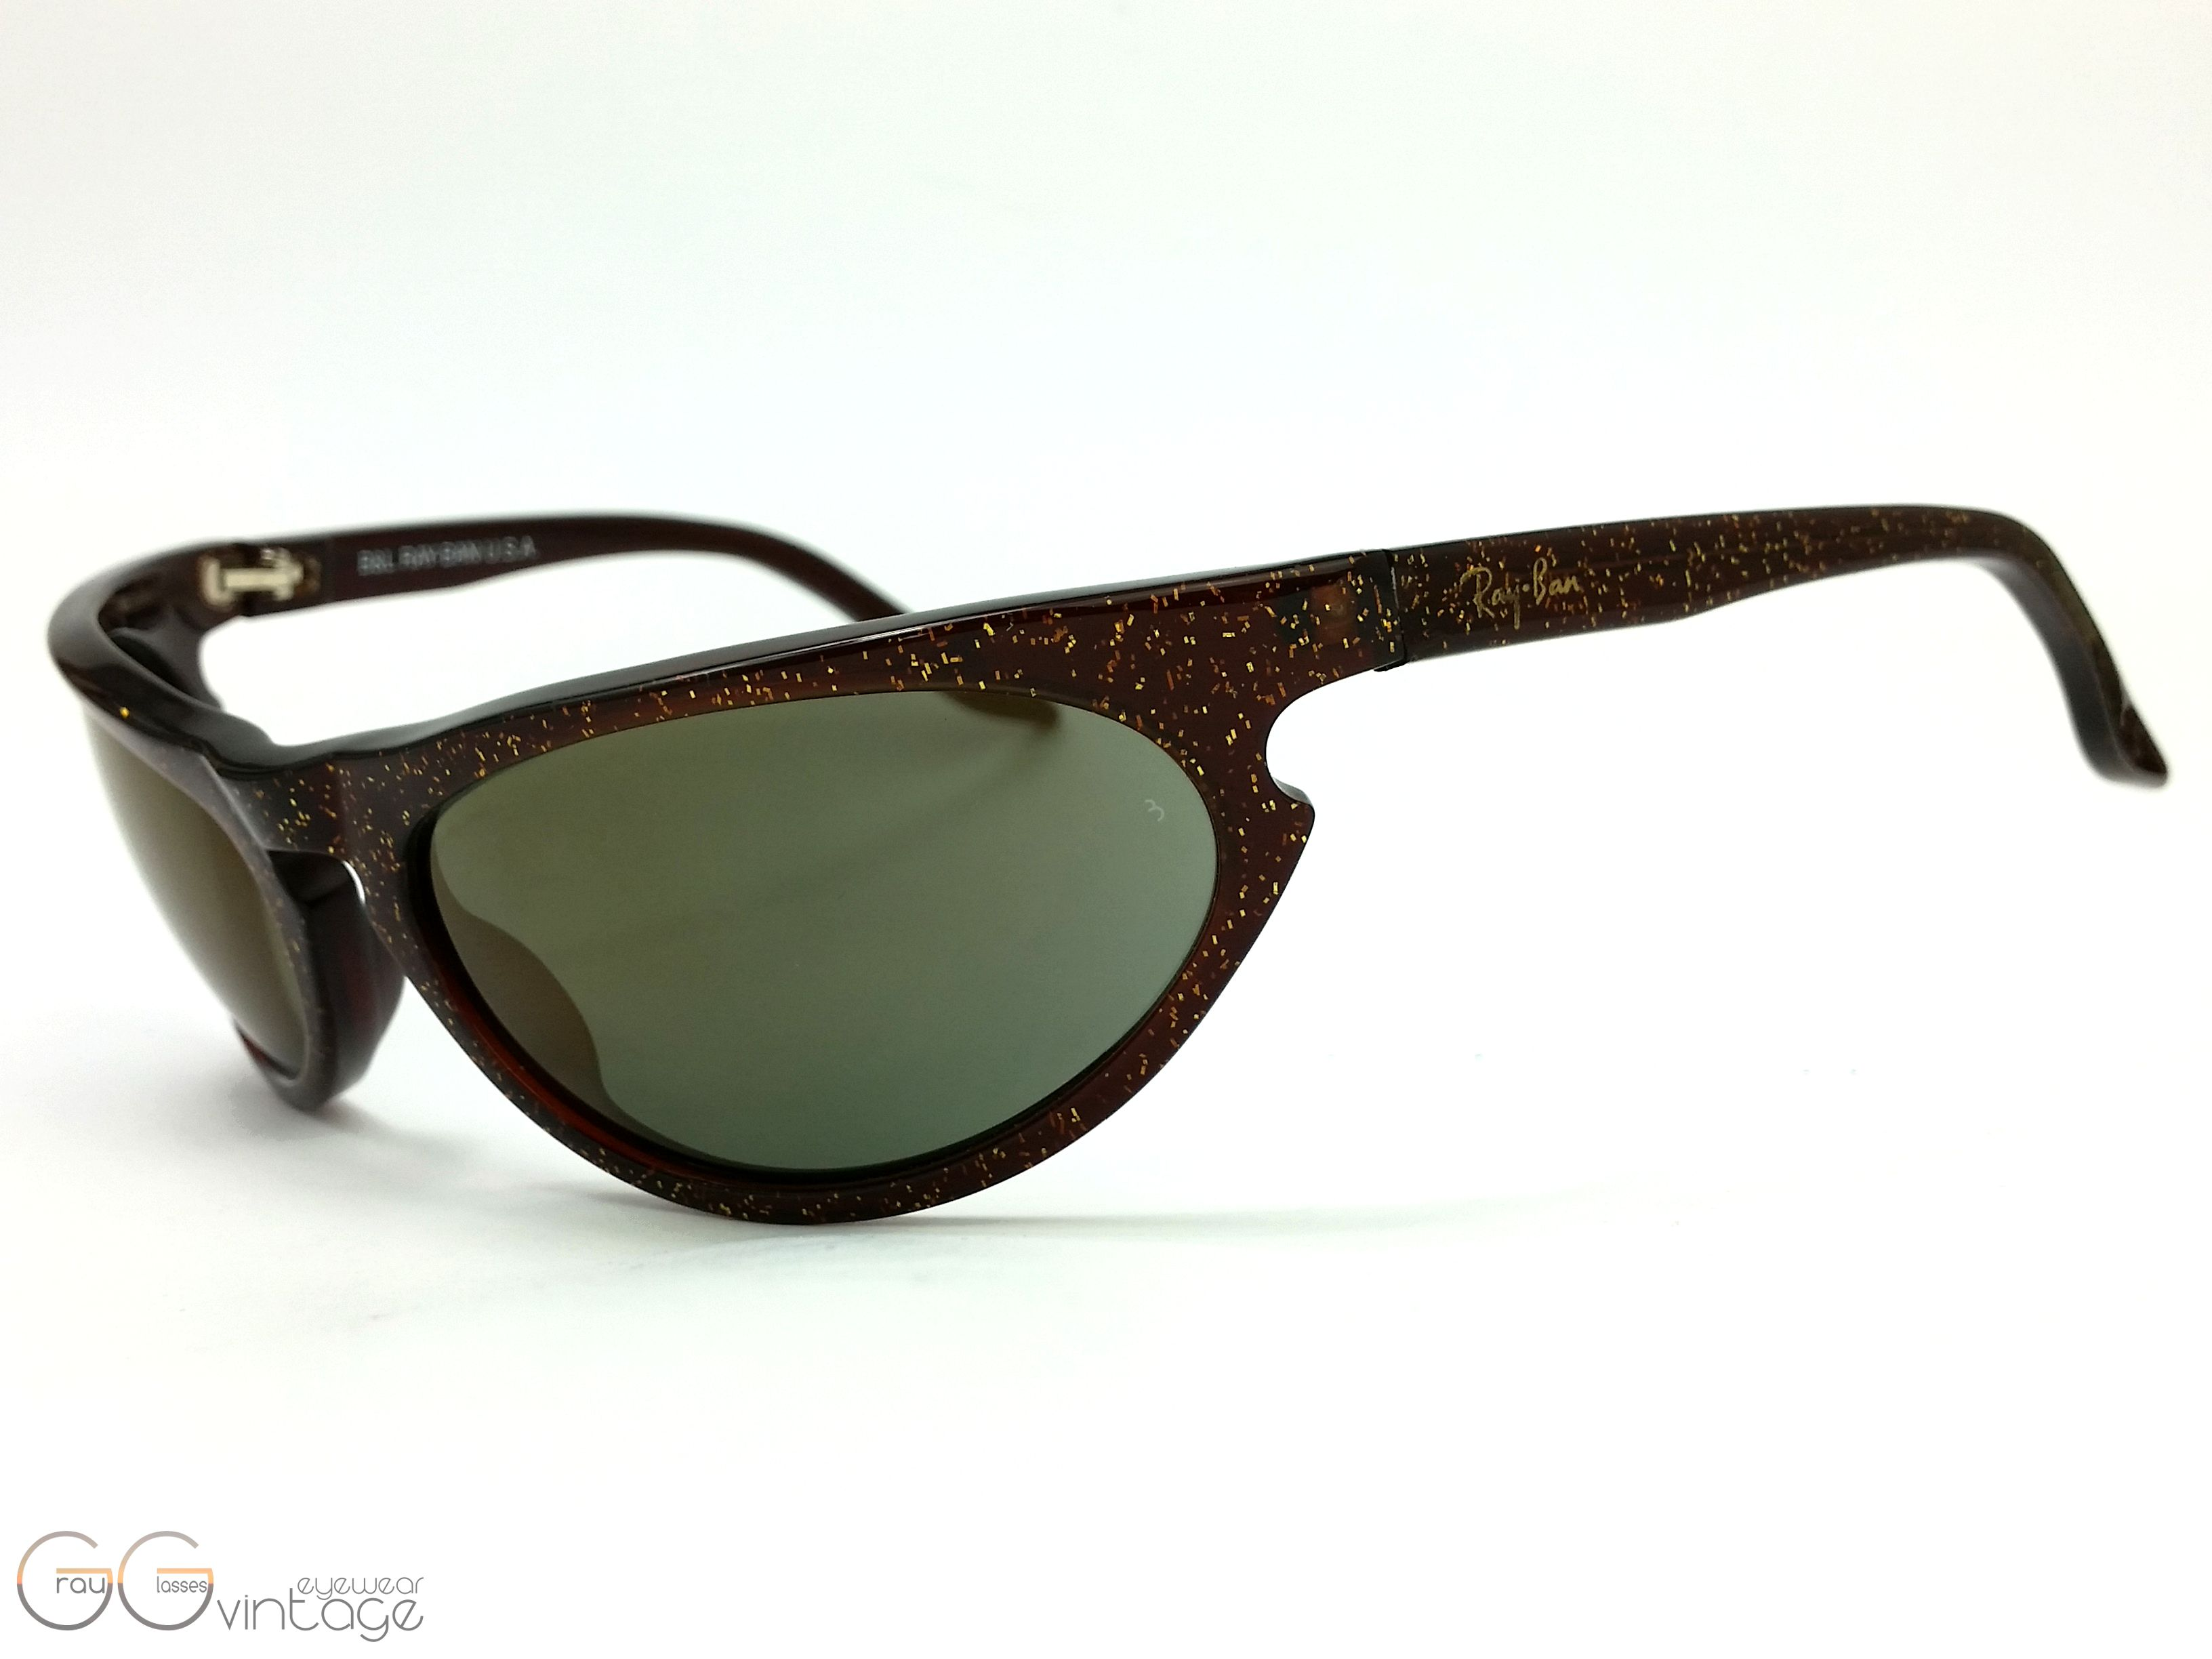 98176440ed ... Preview  Ray-Ban B   L U.S.A Model W2354 Side Street GrauGlasses ...